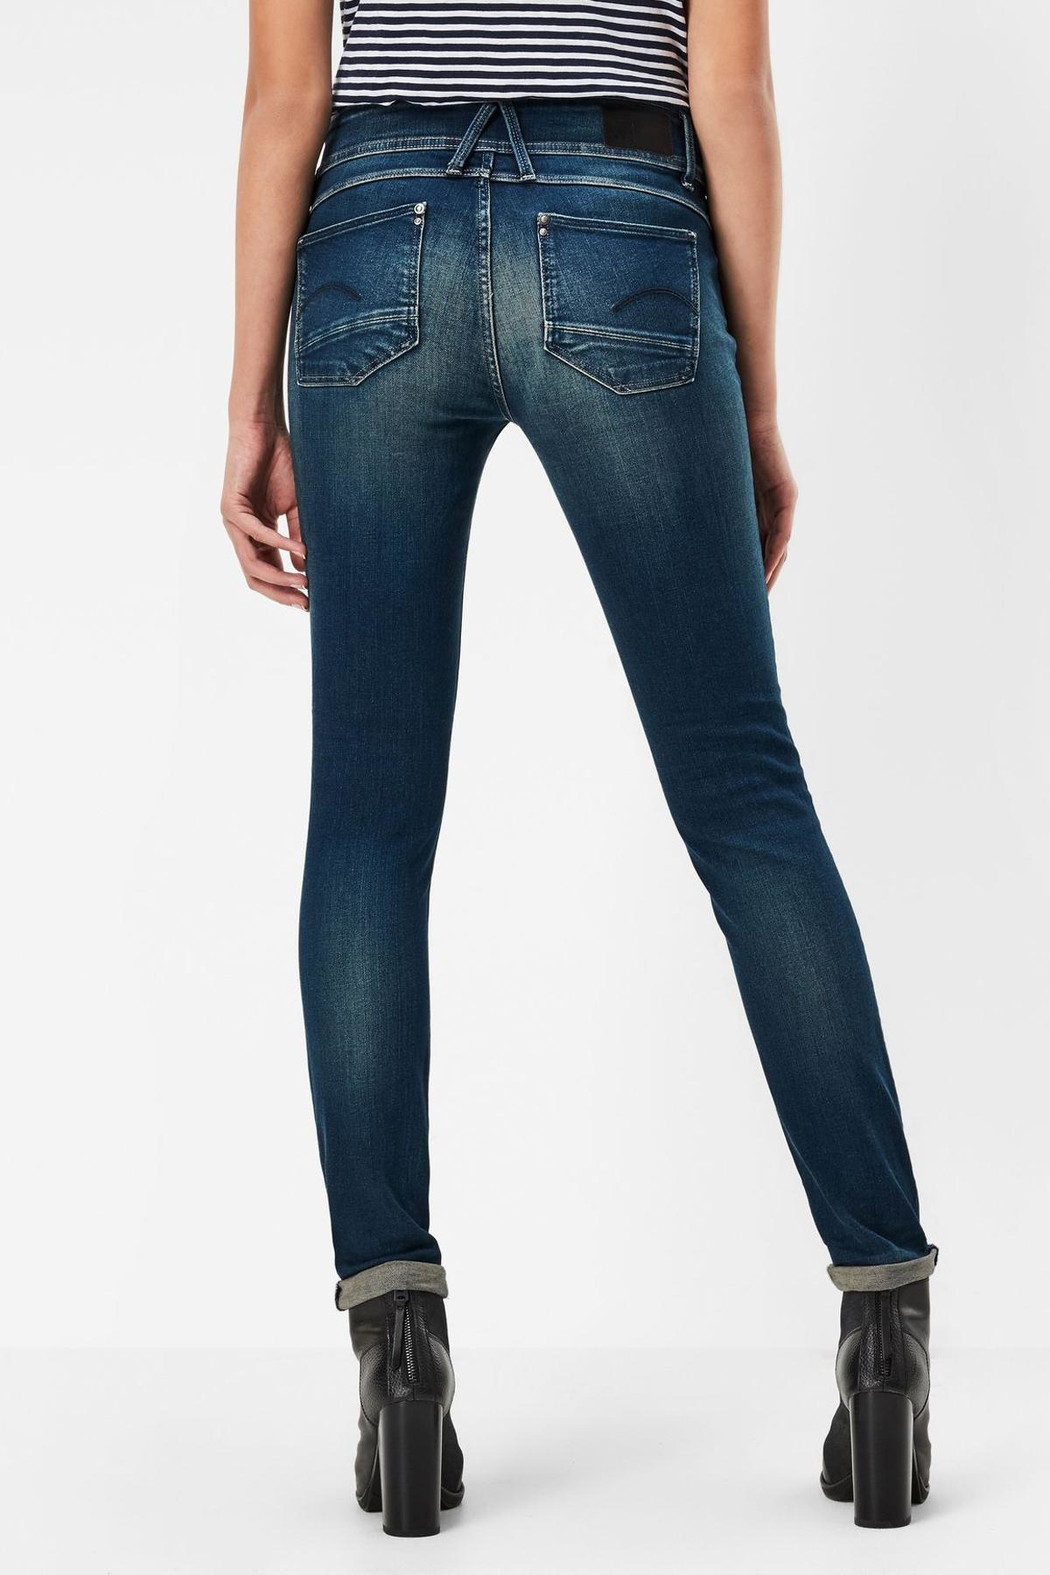 g star raw lynn skinny jeans from ontario by i n boutique shoptiques. Black Bedroom Furniture Sets. Home Design Ideas